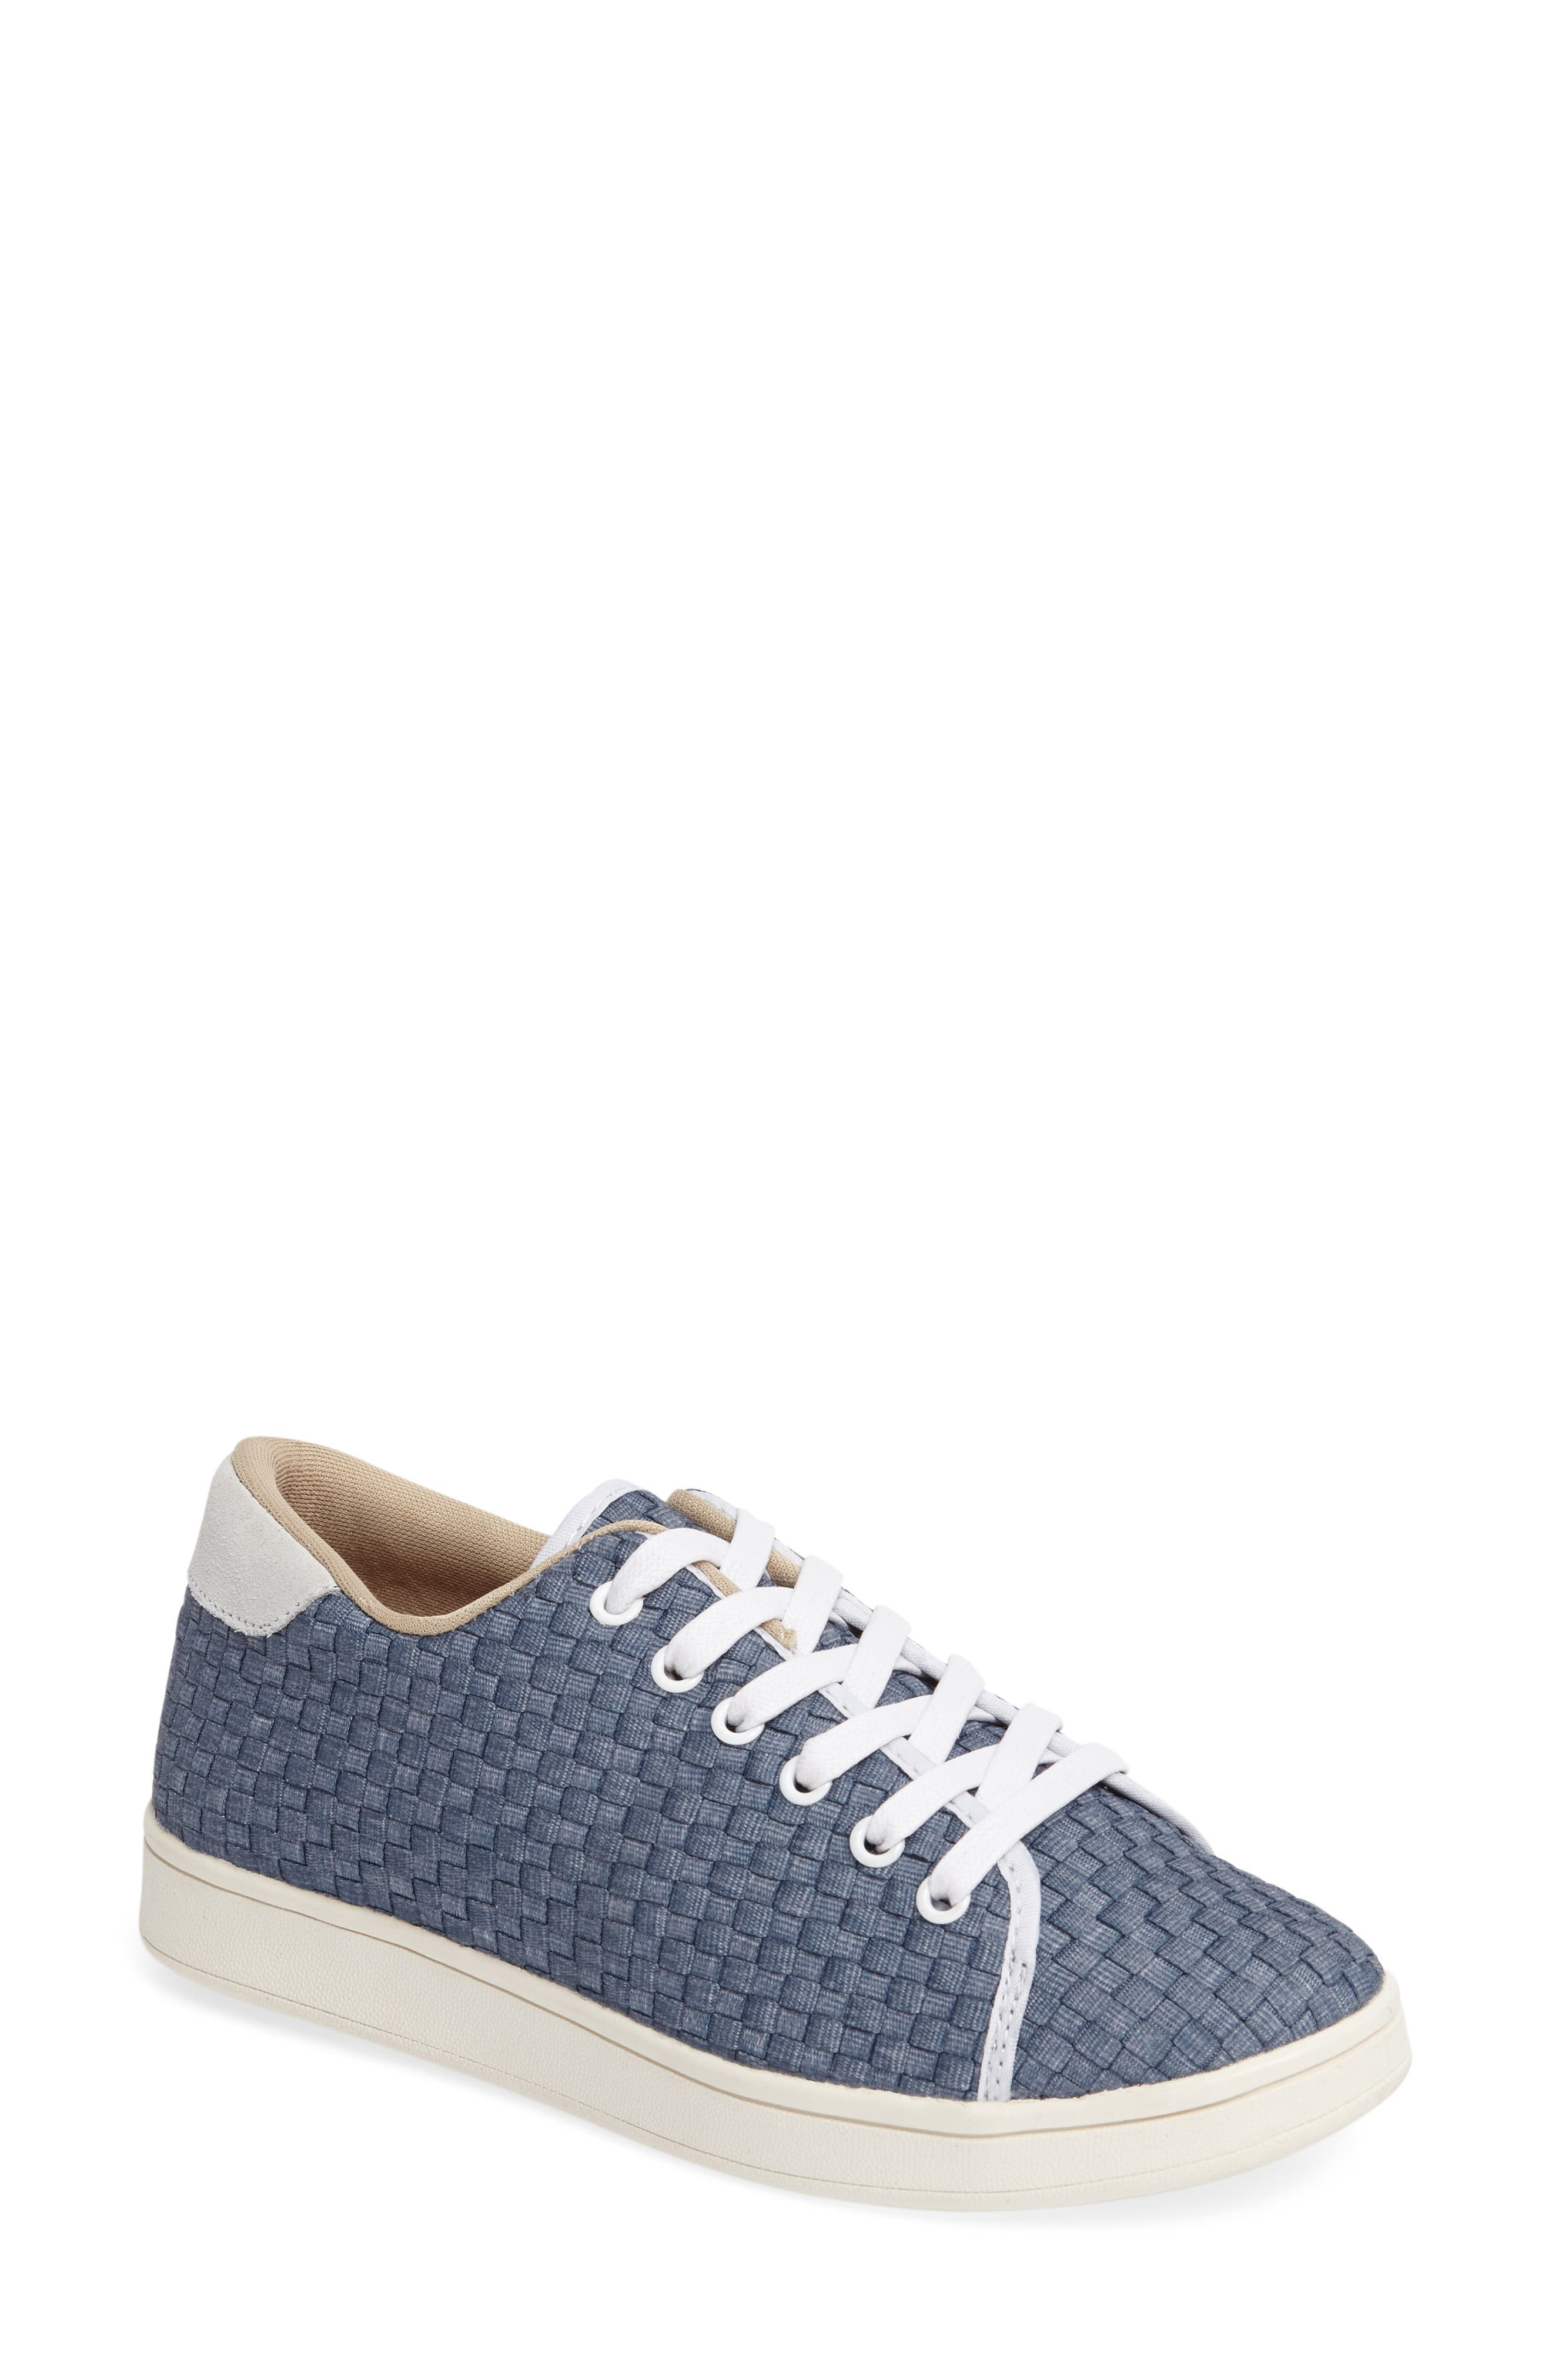 Daphne Sneaker,                         Main,                         color, Light Jeans Fabric